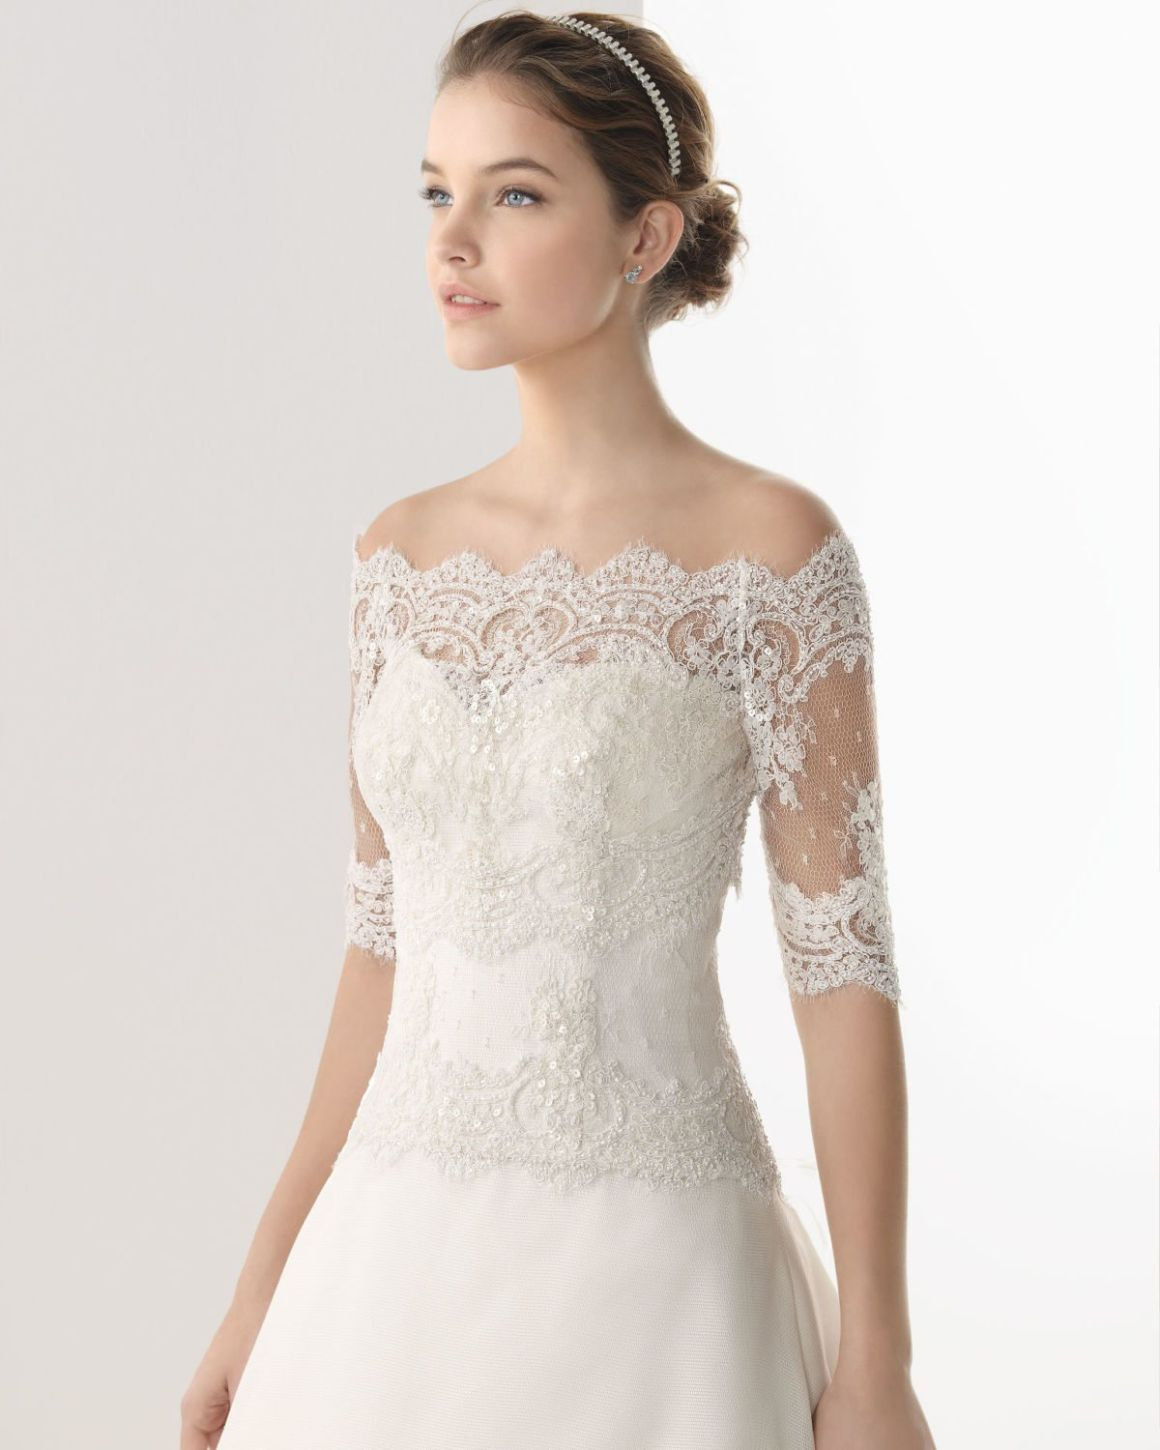 Lace Bridal Shower Dress